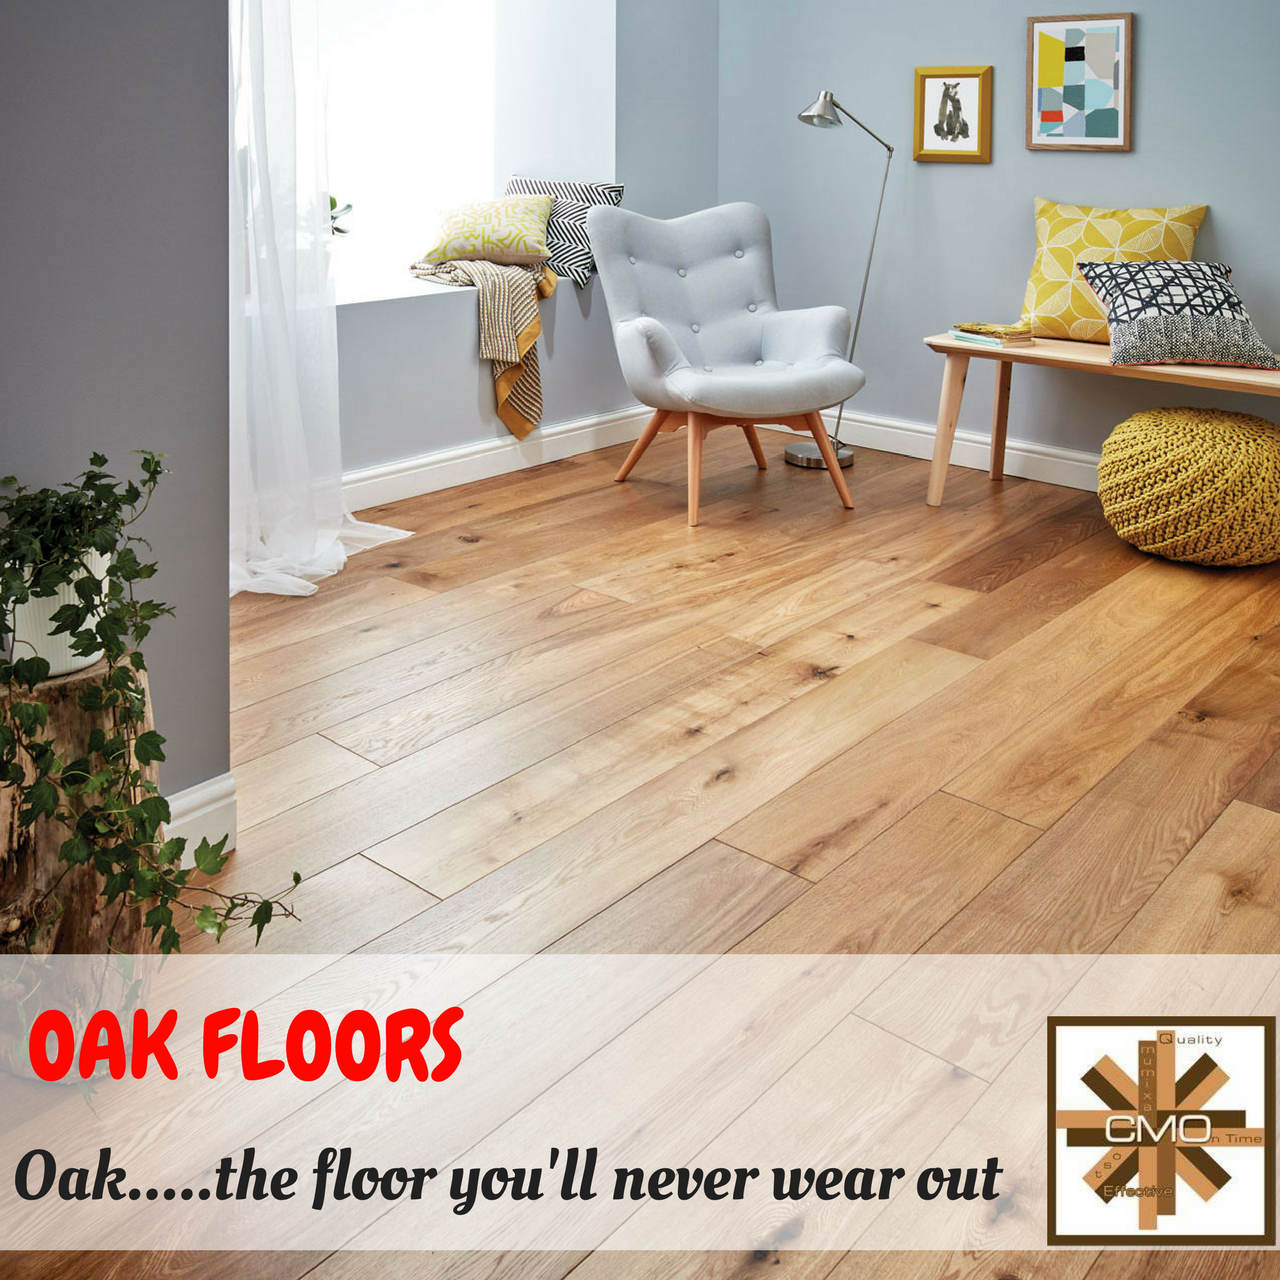 Cork Flooring Is A Flooring Material Manufactured From The By Product Of The Cork Oak Tree Cork F Living Room Wood Floor House Flooring Engineered Wood Floors